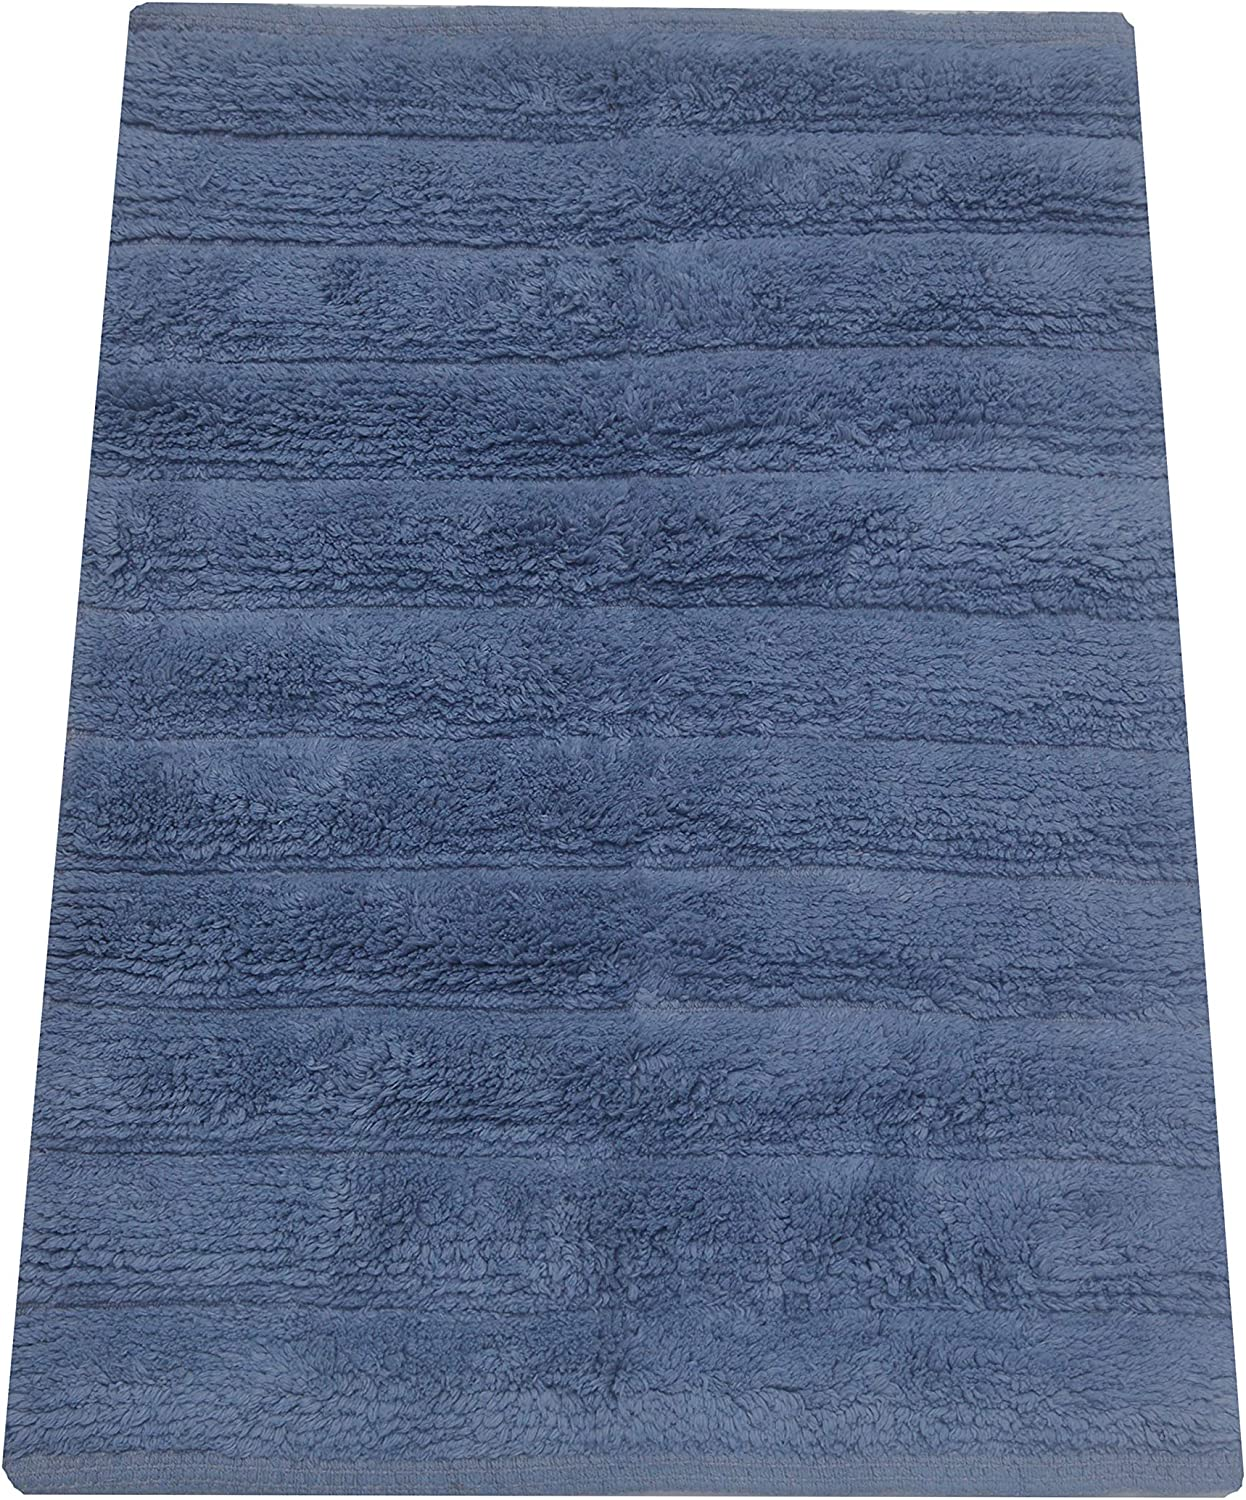 """Chardin Home – Bali Spa 100% Cotton Supersoft Hand Woven Bathroom Rug, Size 20""""x30"""". Provencial Blue"""